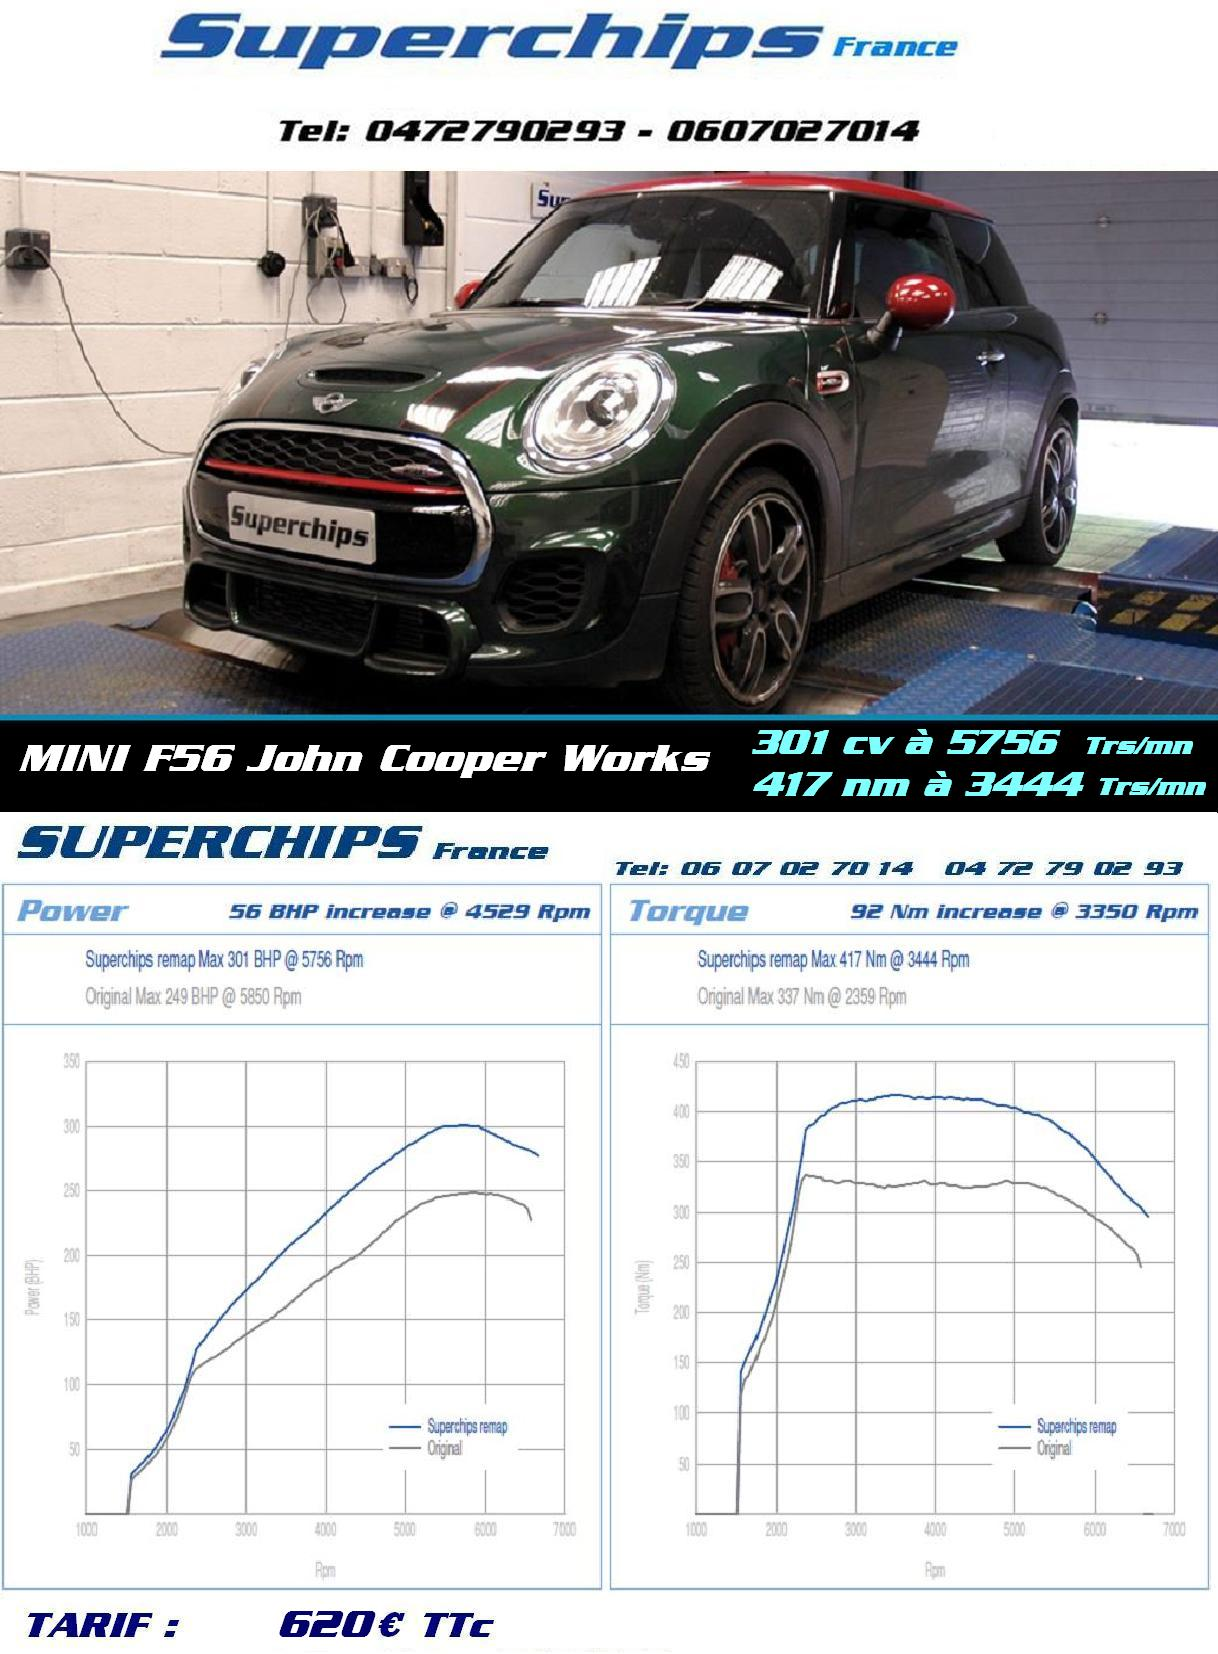 cesam accessoires tuning mini f56 john cooper works. Black Bedroom Furniture Sets. Home Design Ideas